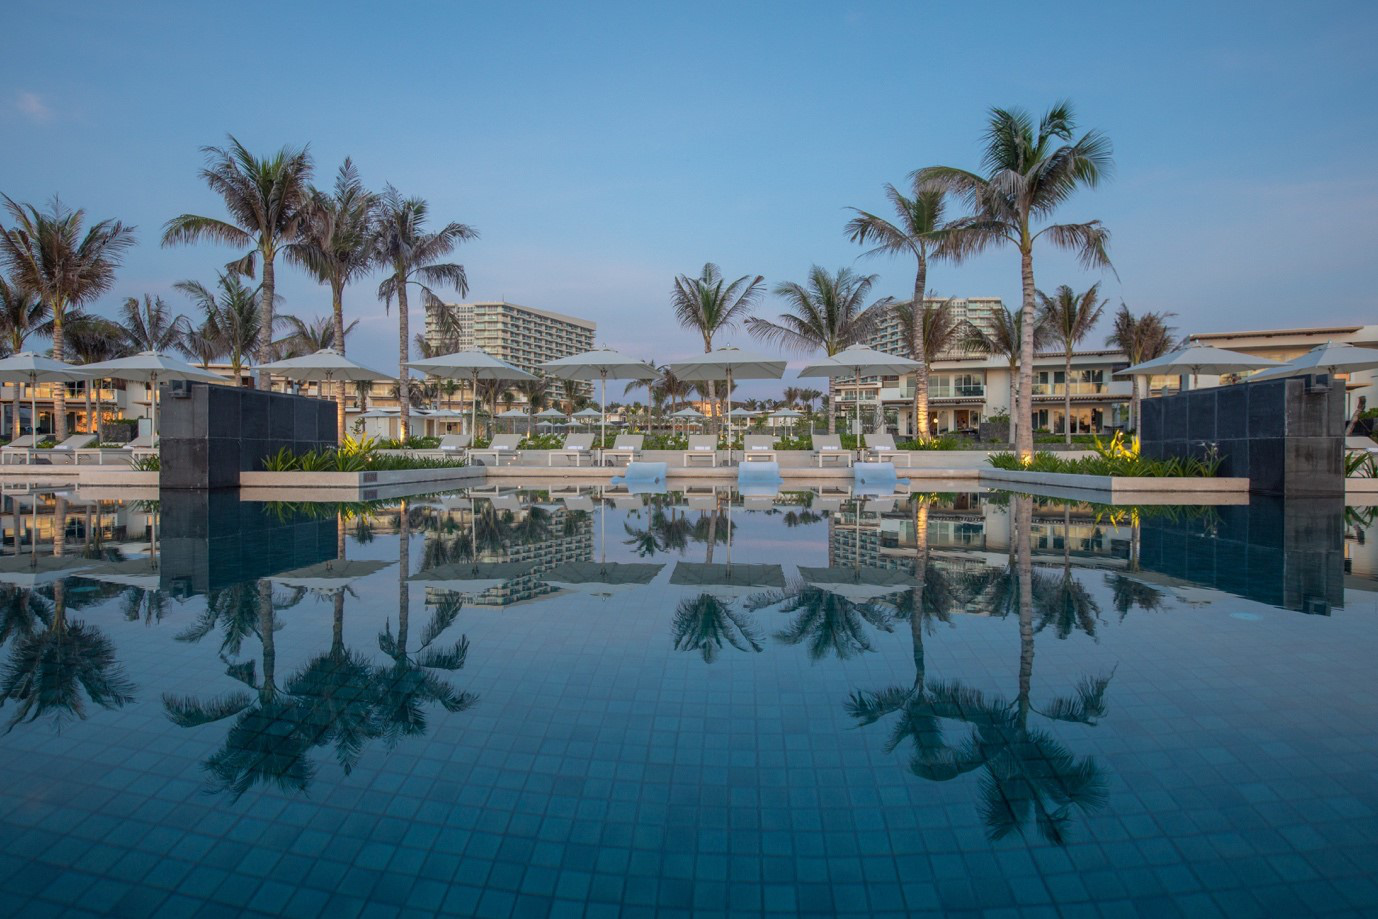 A view of ALMA Resort in Khanh Hoa Province, Vietnam.